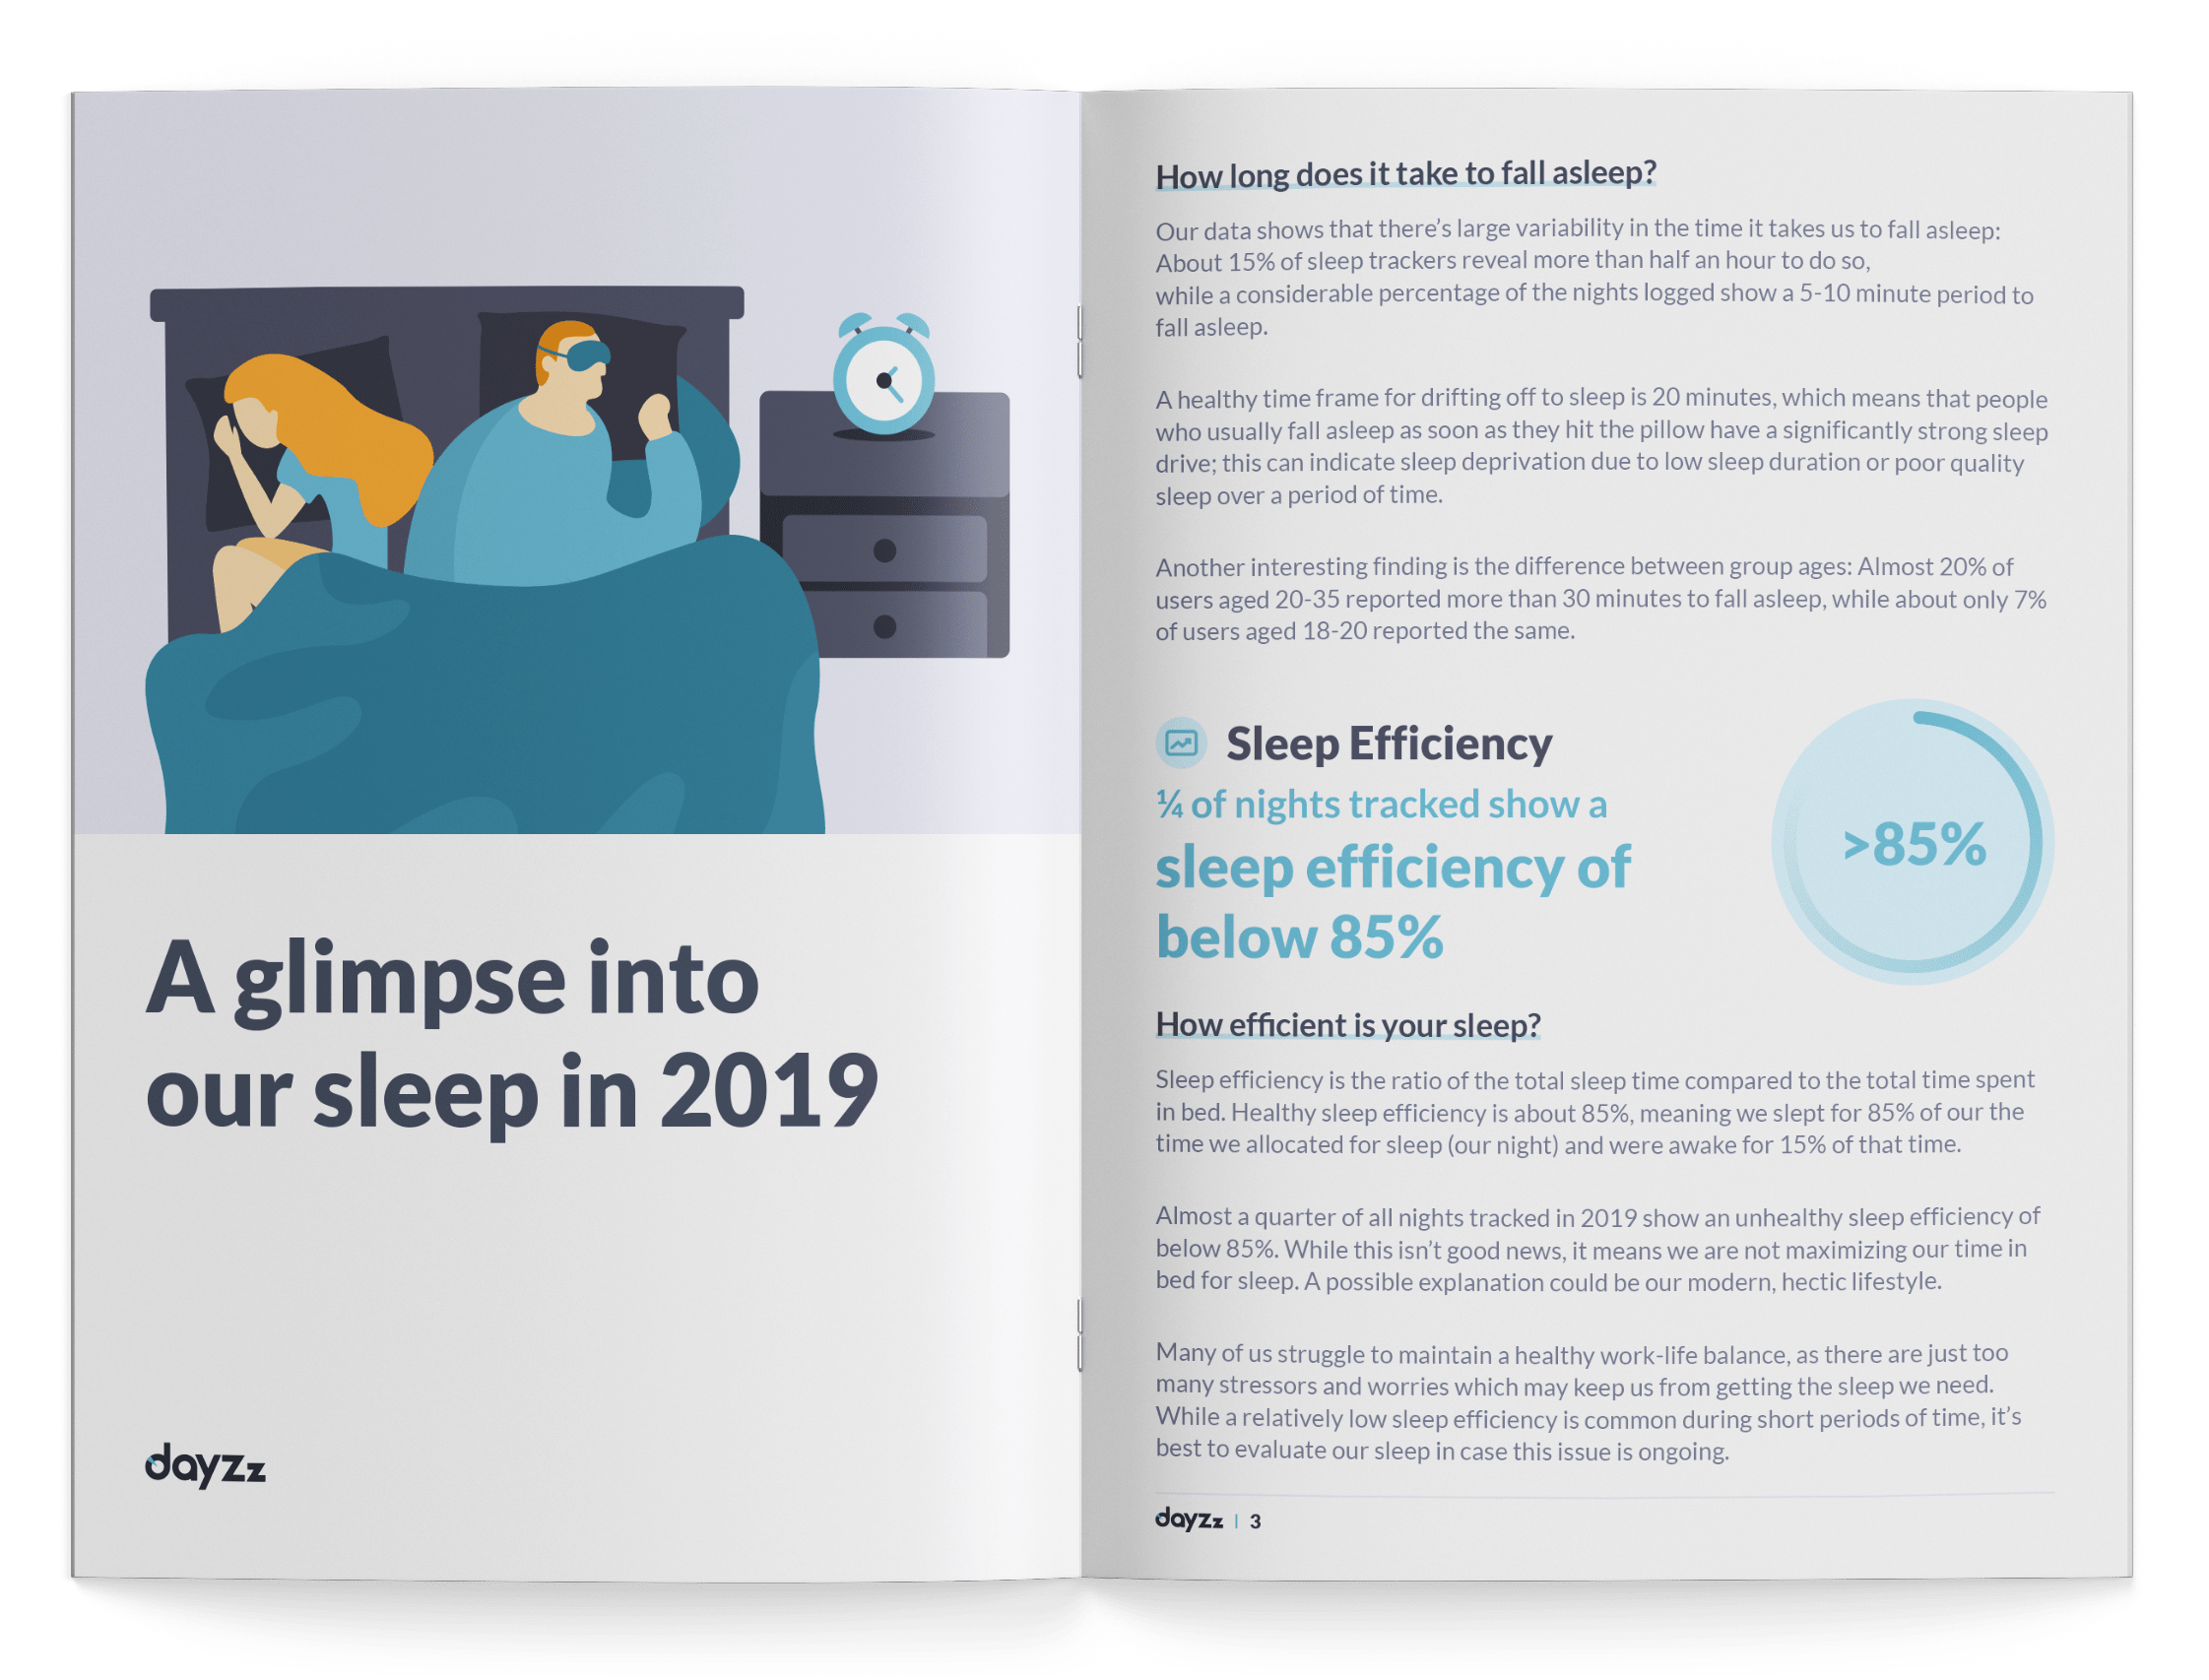 A glimpse into our sleep in 2019